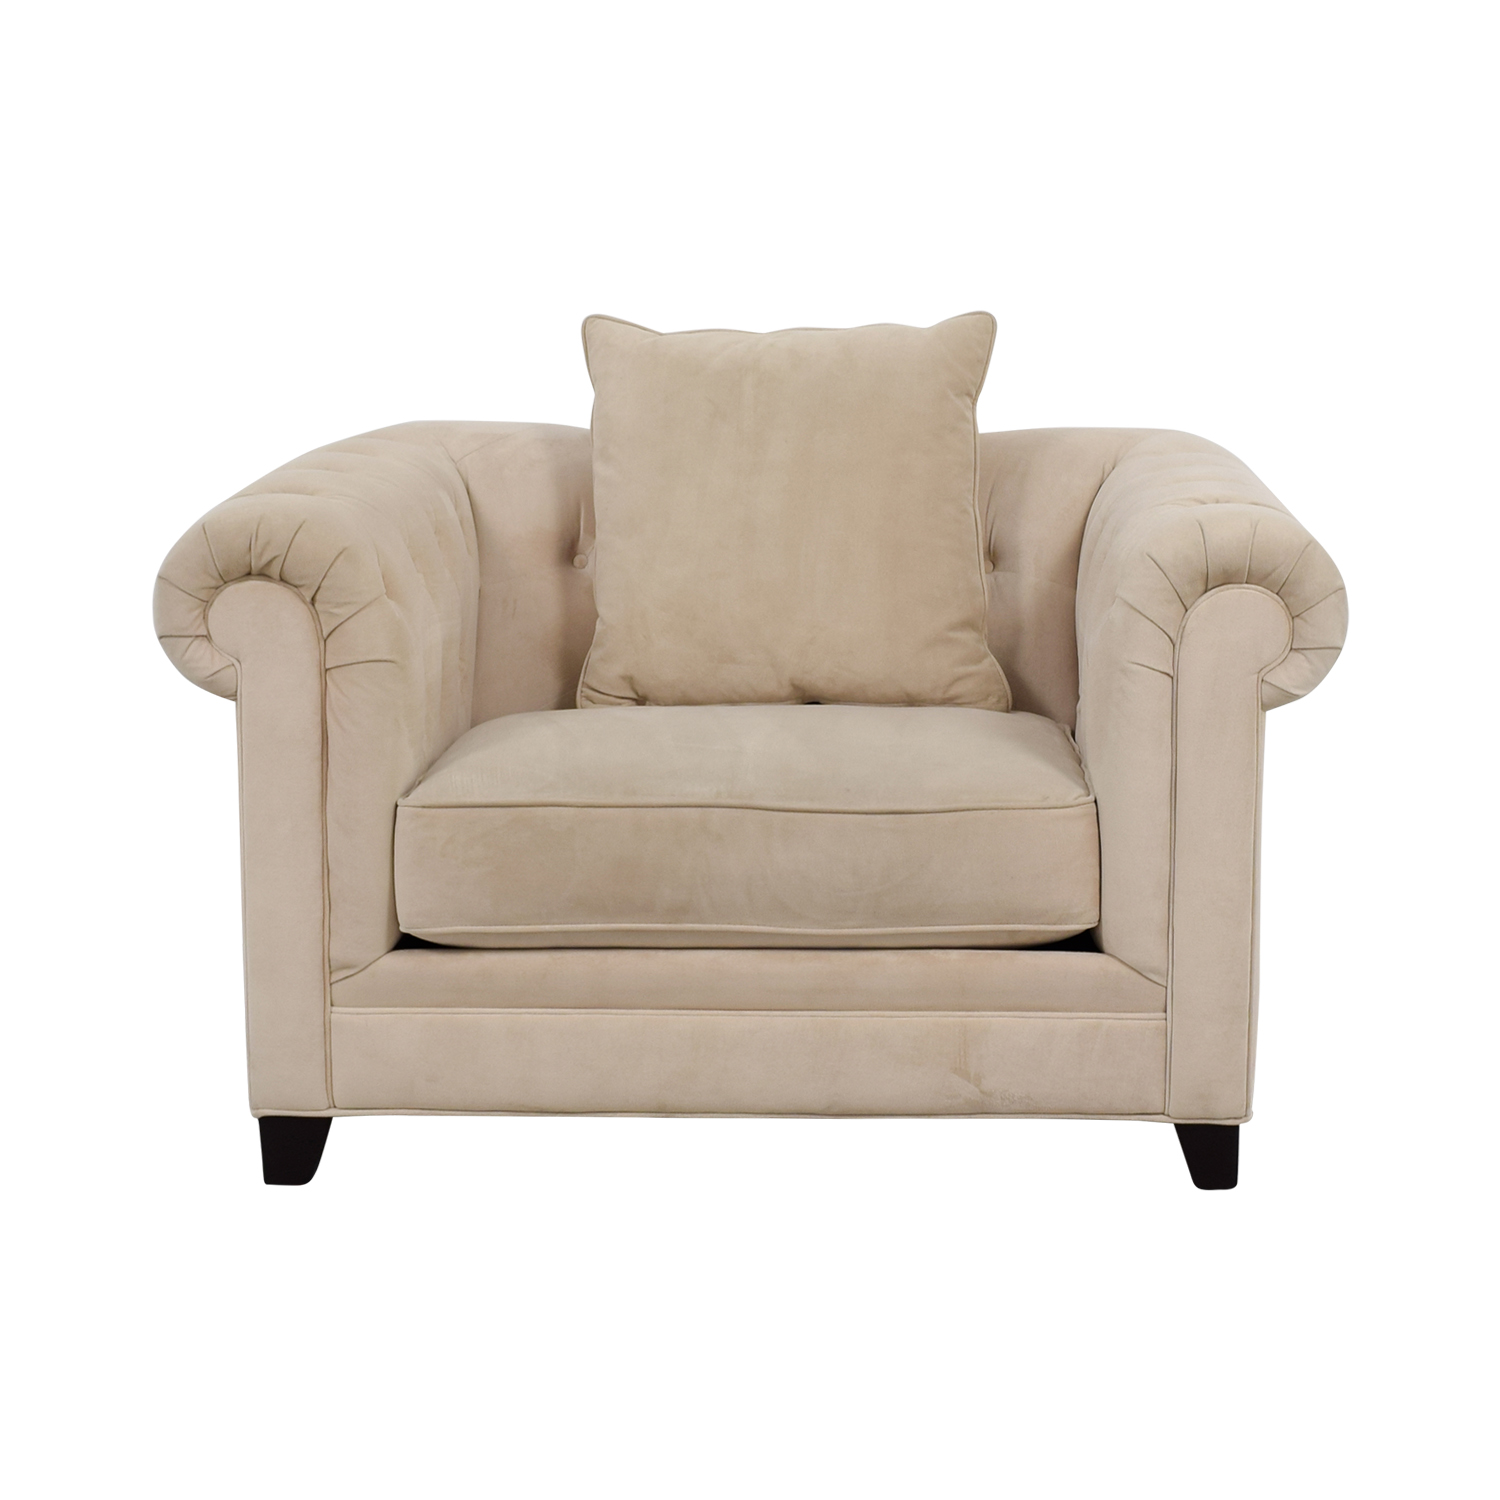 Martha Stewart for Macys Off White Tufted Loveseat Martha Stewart for Macys